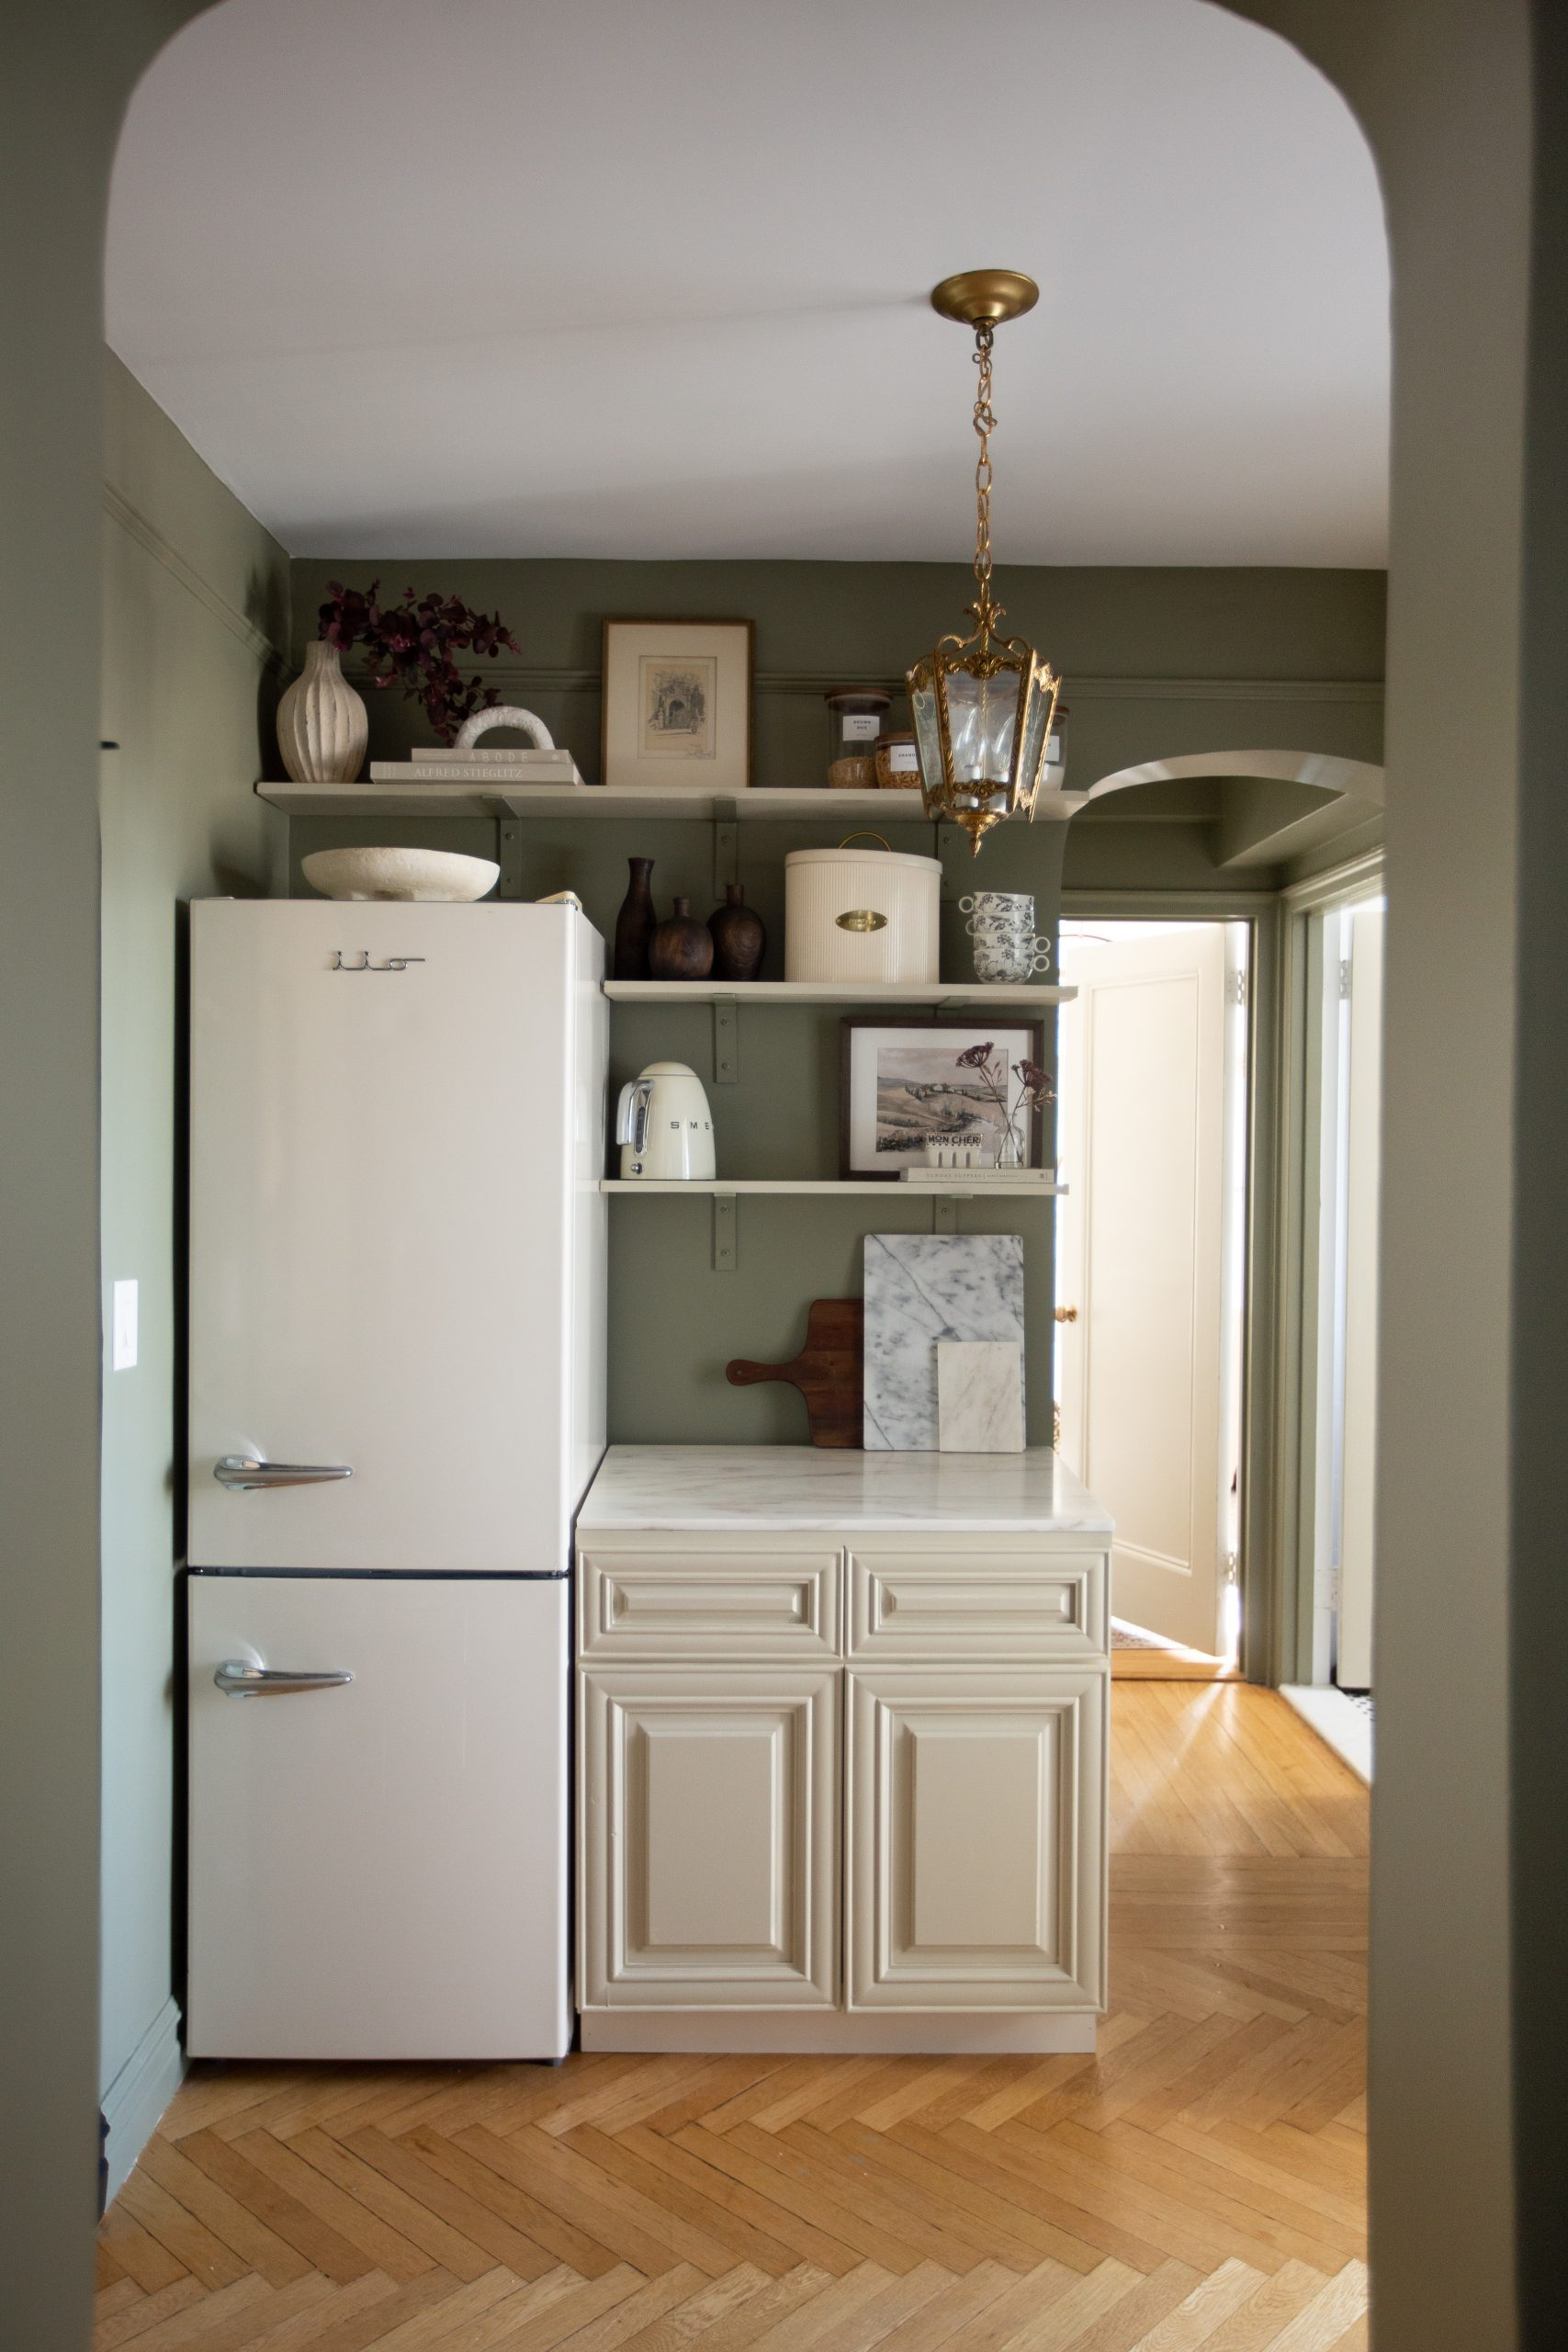 Selecting Our Kitchen Paint Color